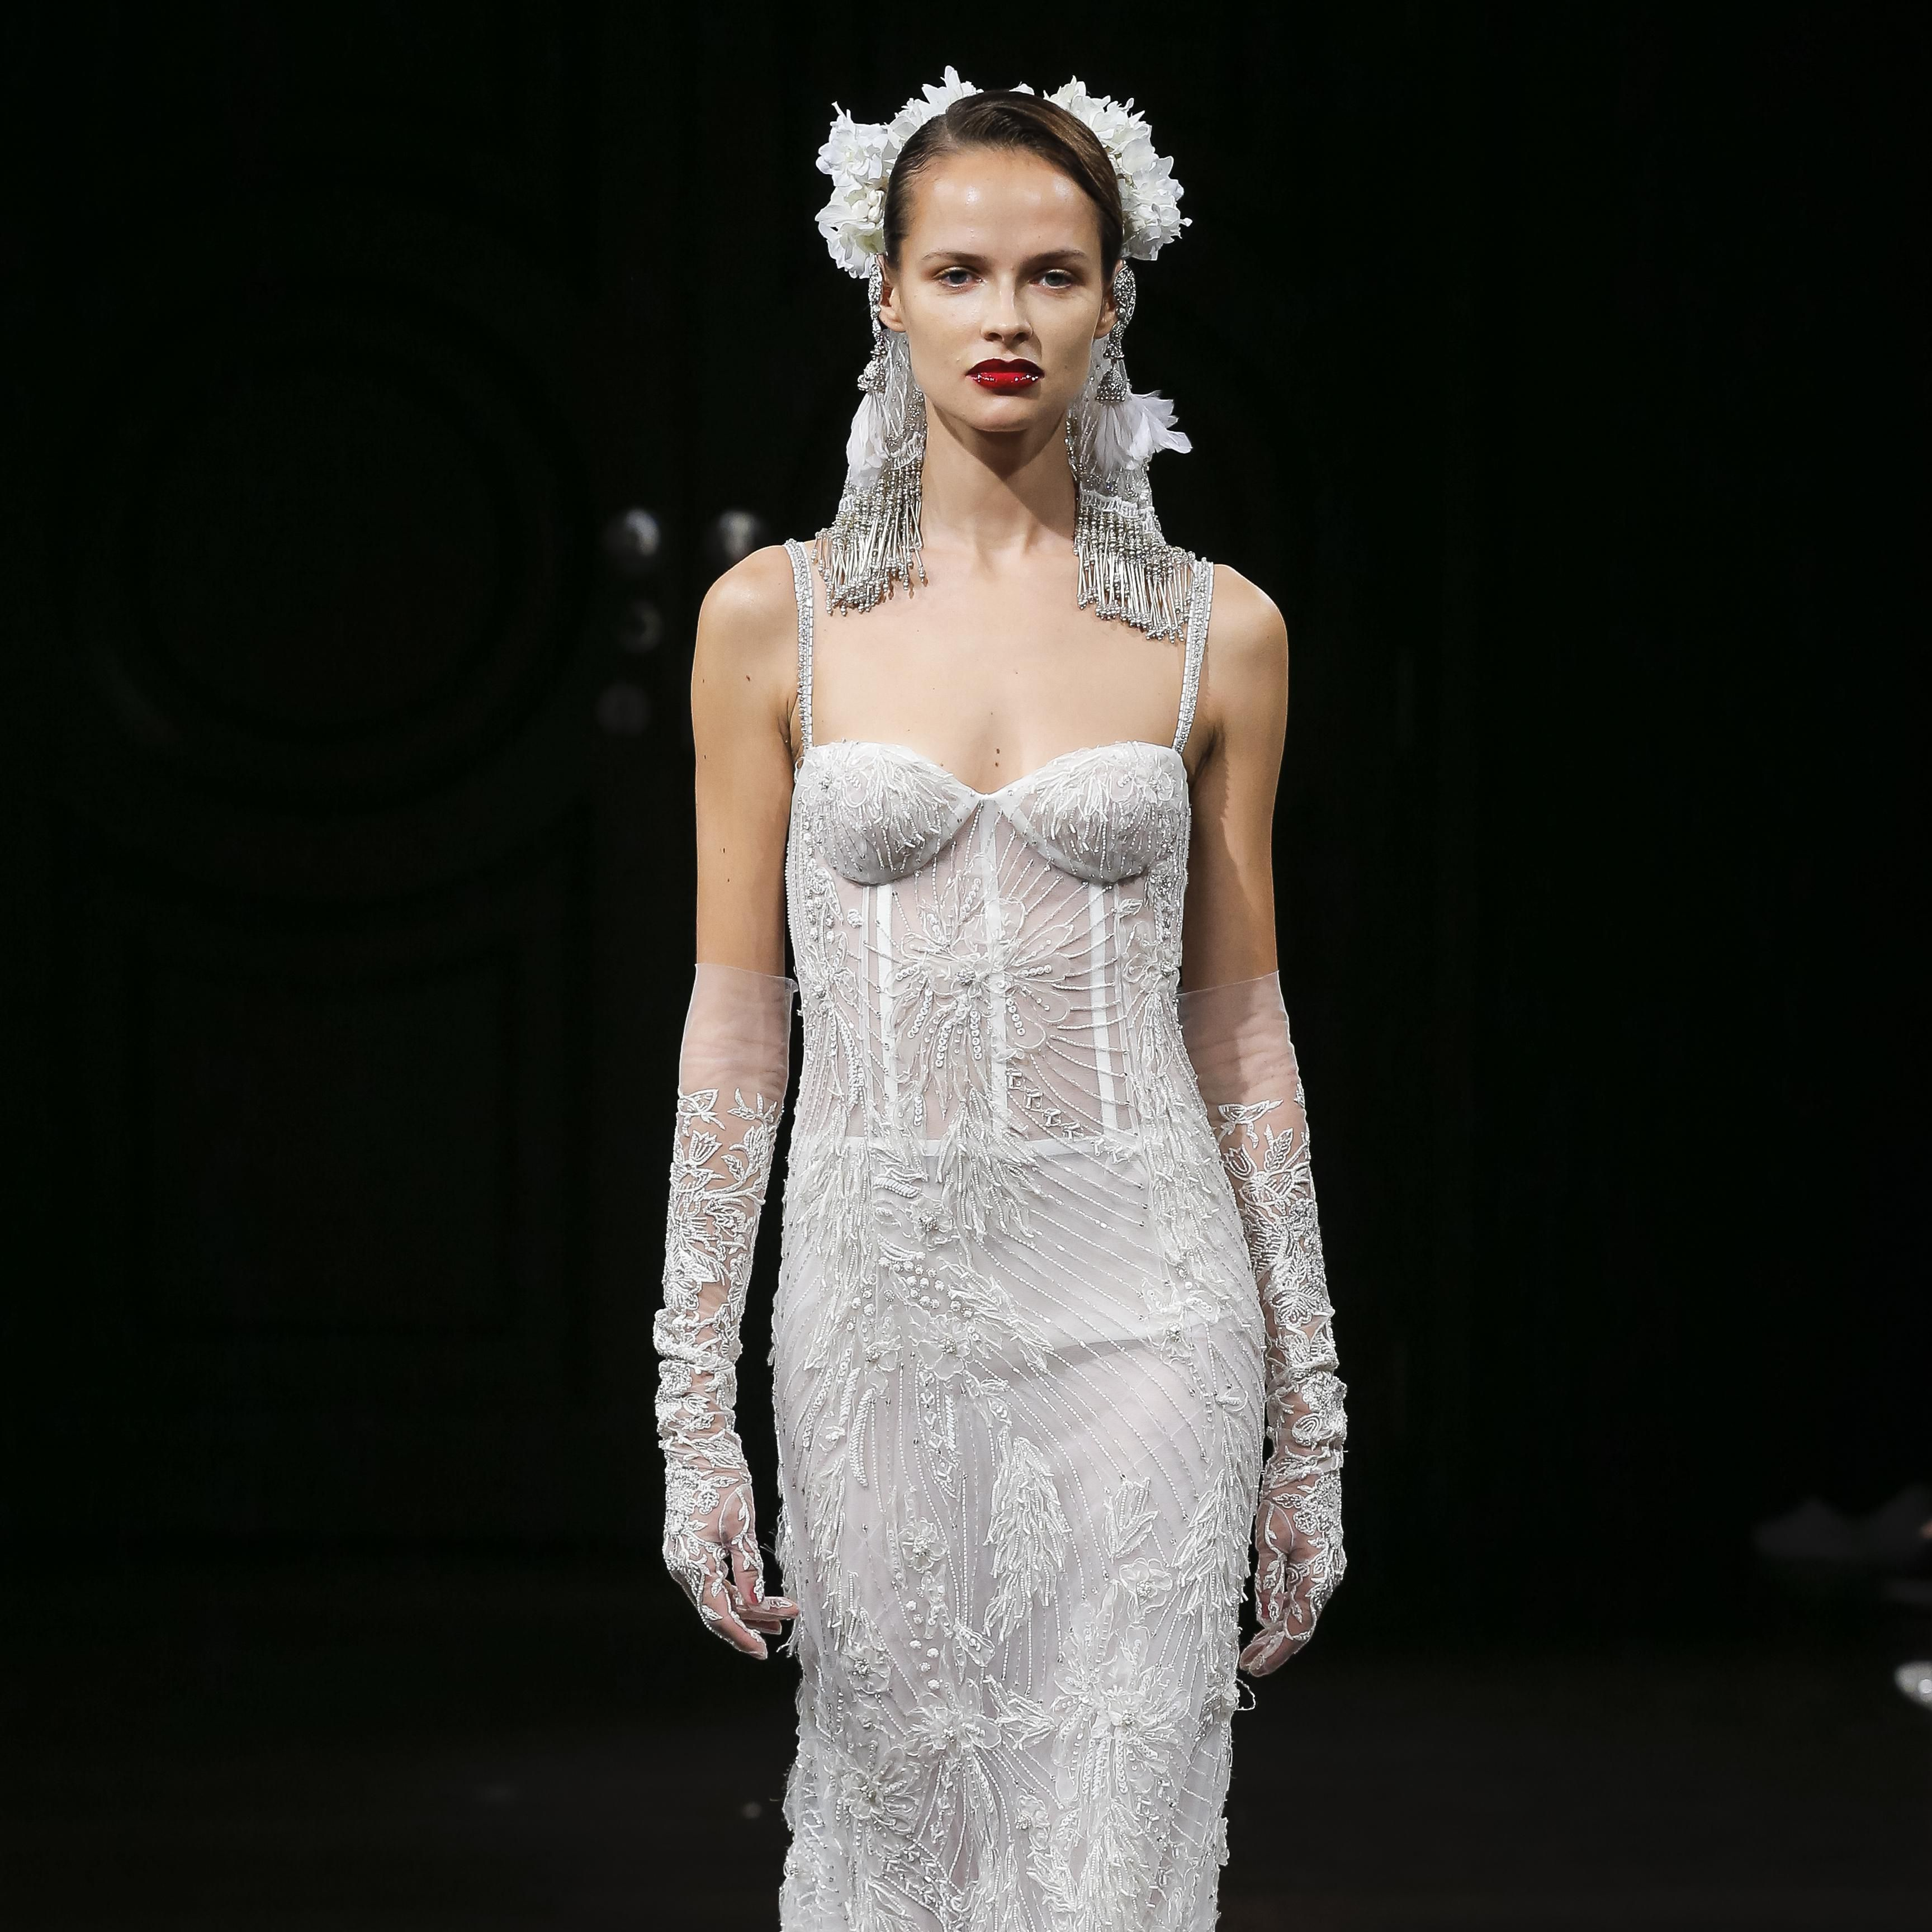 This Wedding Gown Silhouette Is A Major Trend